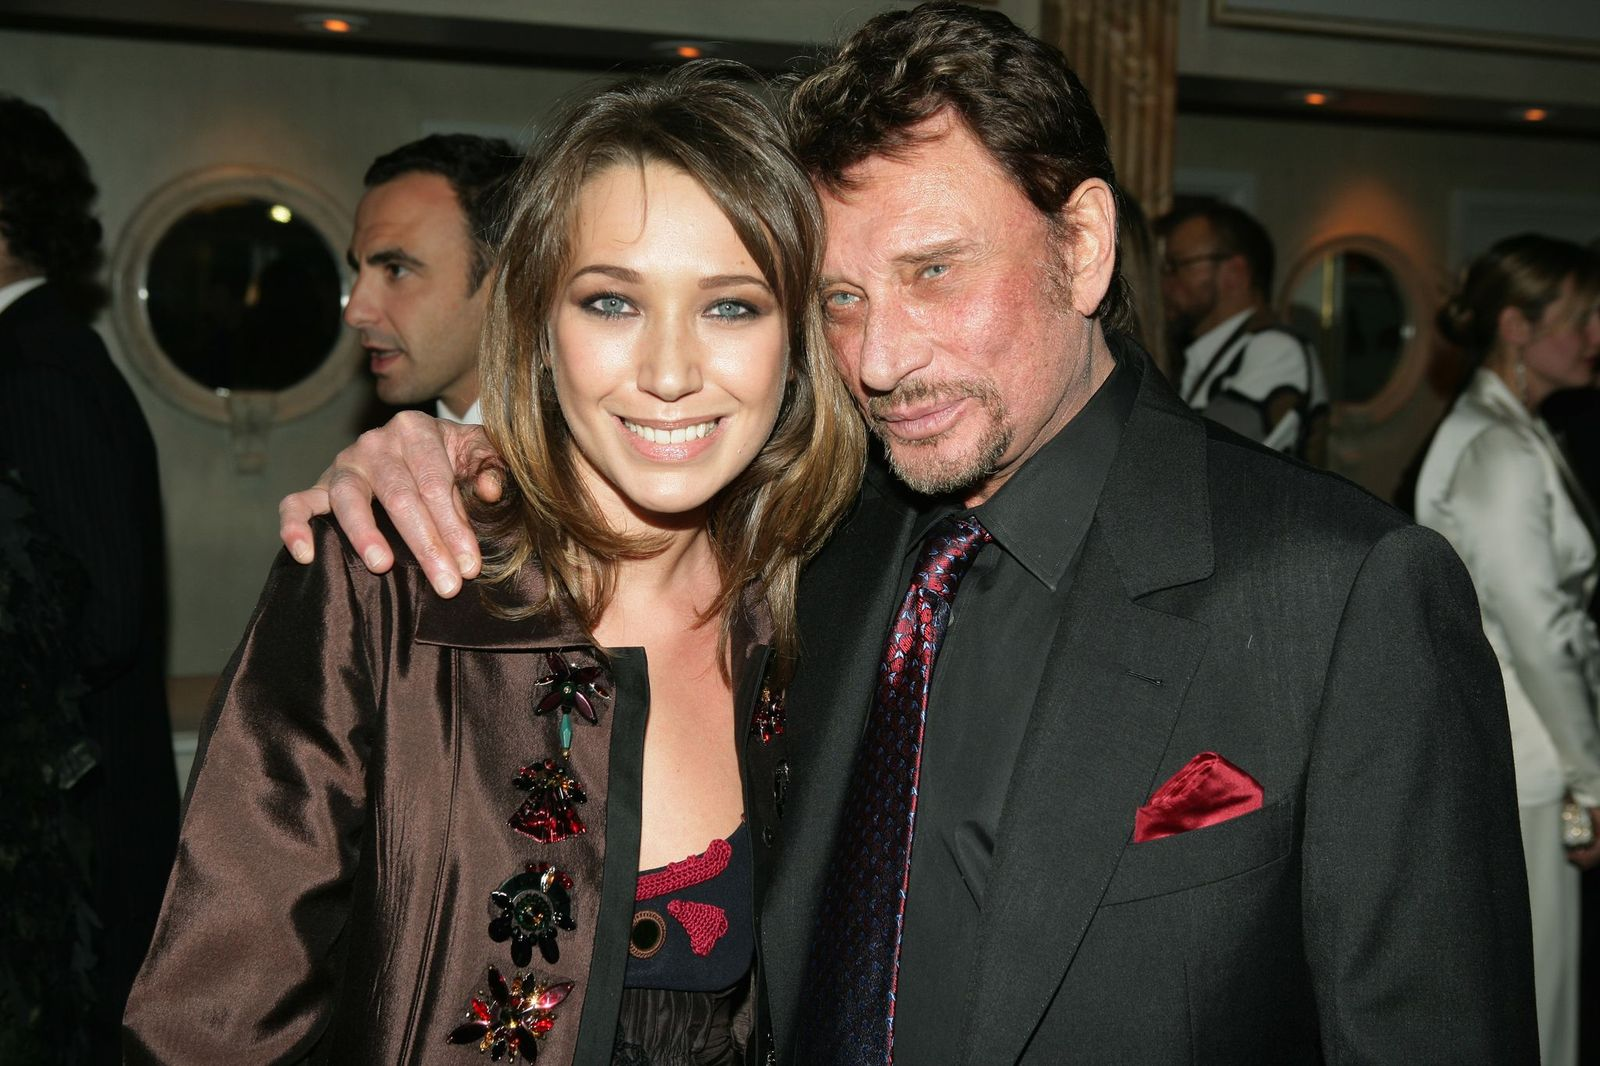 Johnny Hallyday et sa fille Laura Smet | Photo : Getty Images